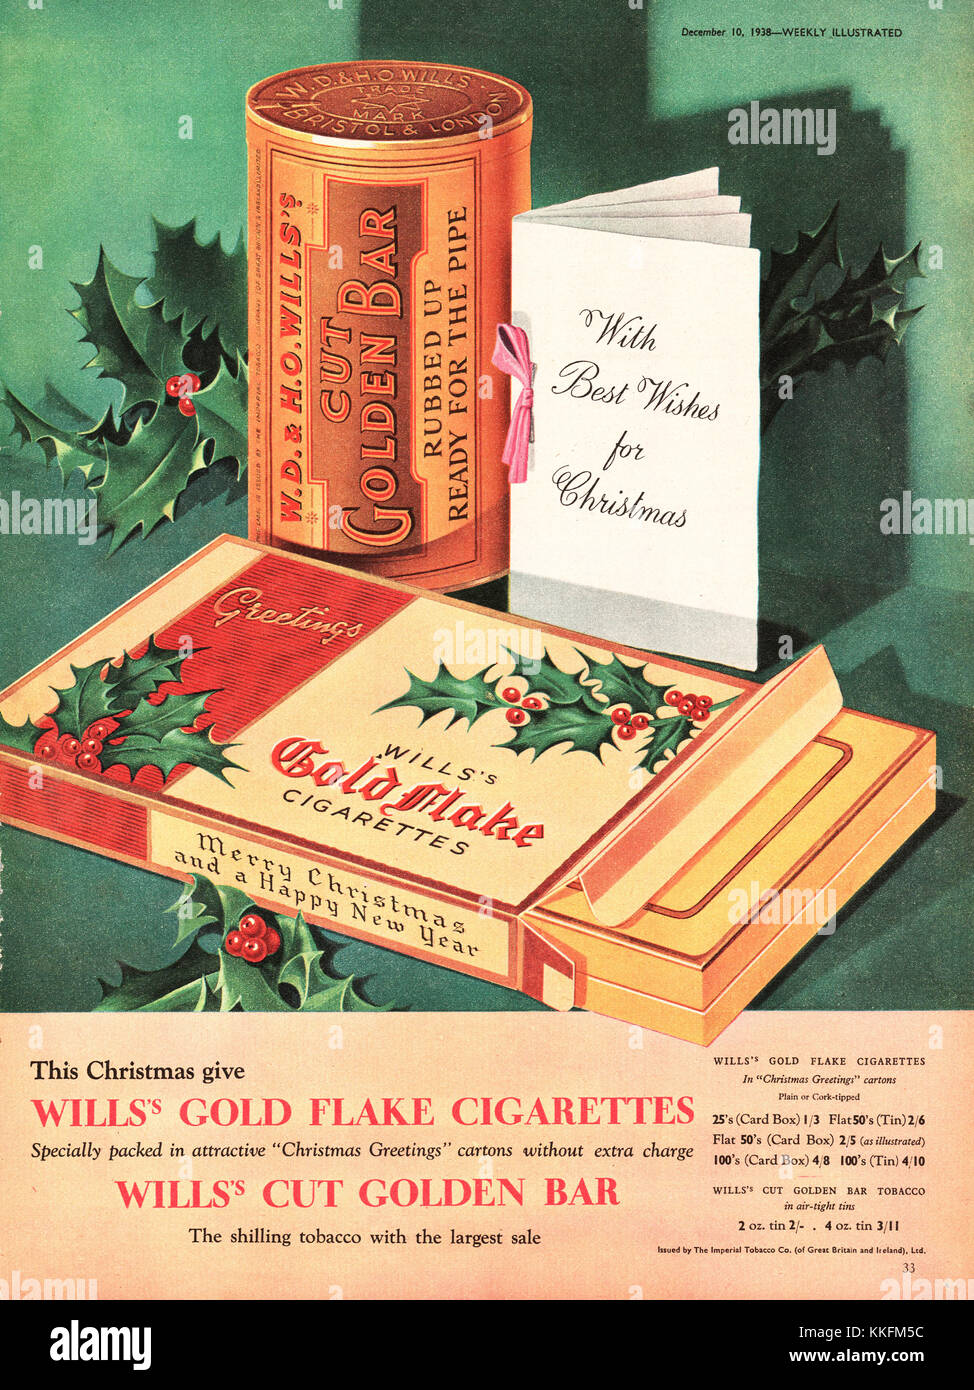 1938 UK Magazine Gold Flake Cigarette Advert - Stock Image